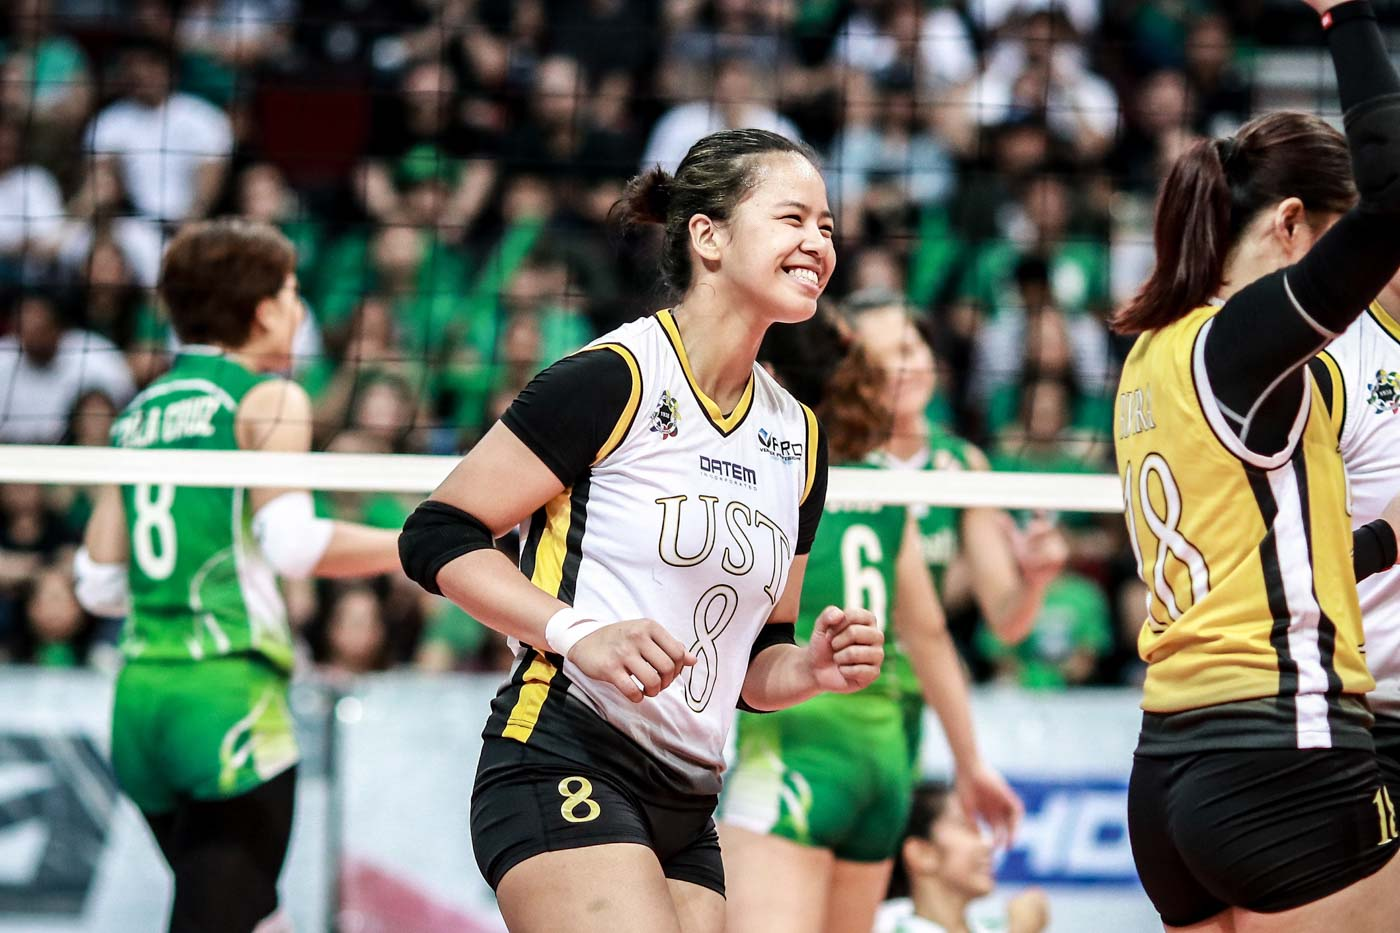 Ust Downs La Salle Dynasty Nails First Title Berth In 8 Seasons